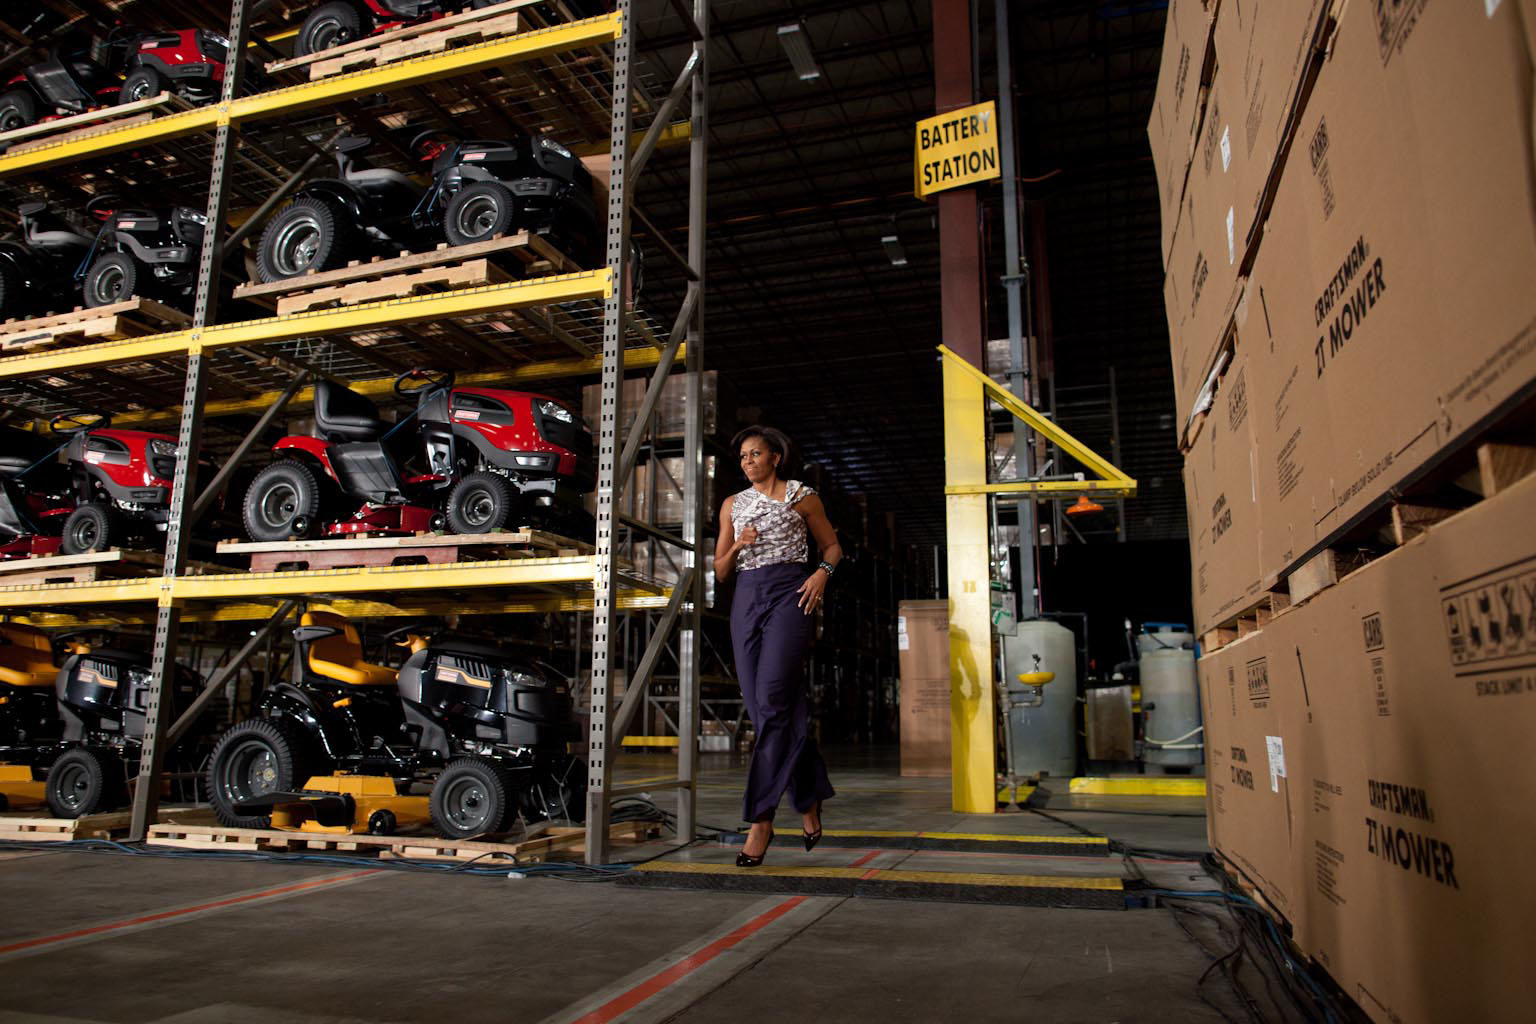 First Lady Michelle Obama greets people following her remarks at a SEARS distribution center 2